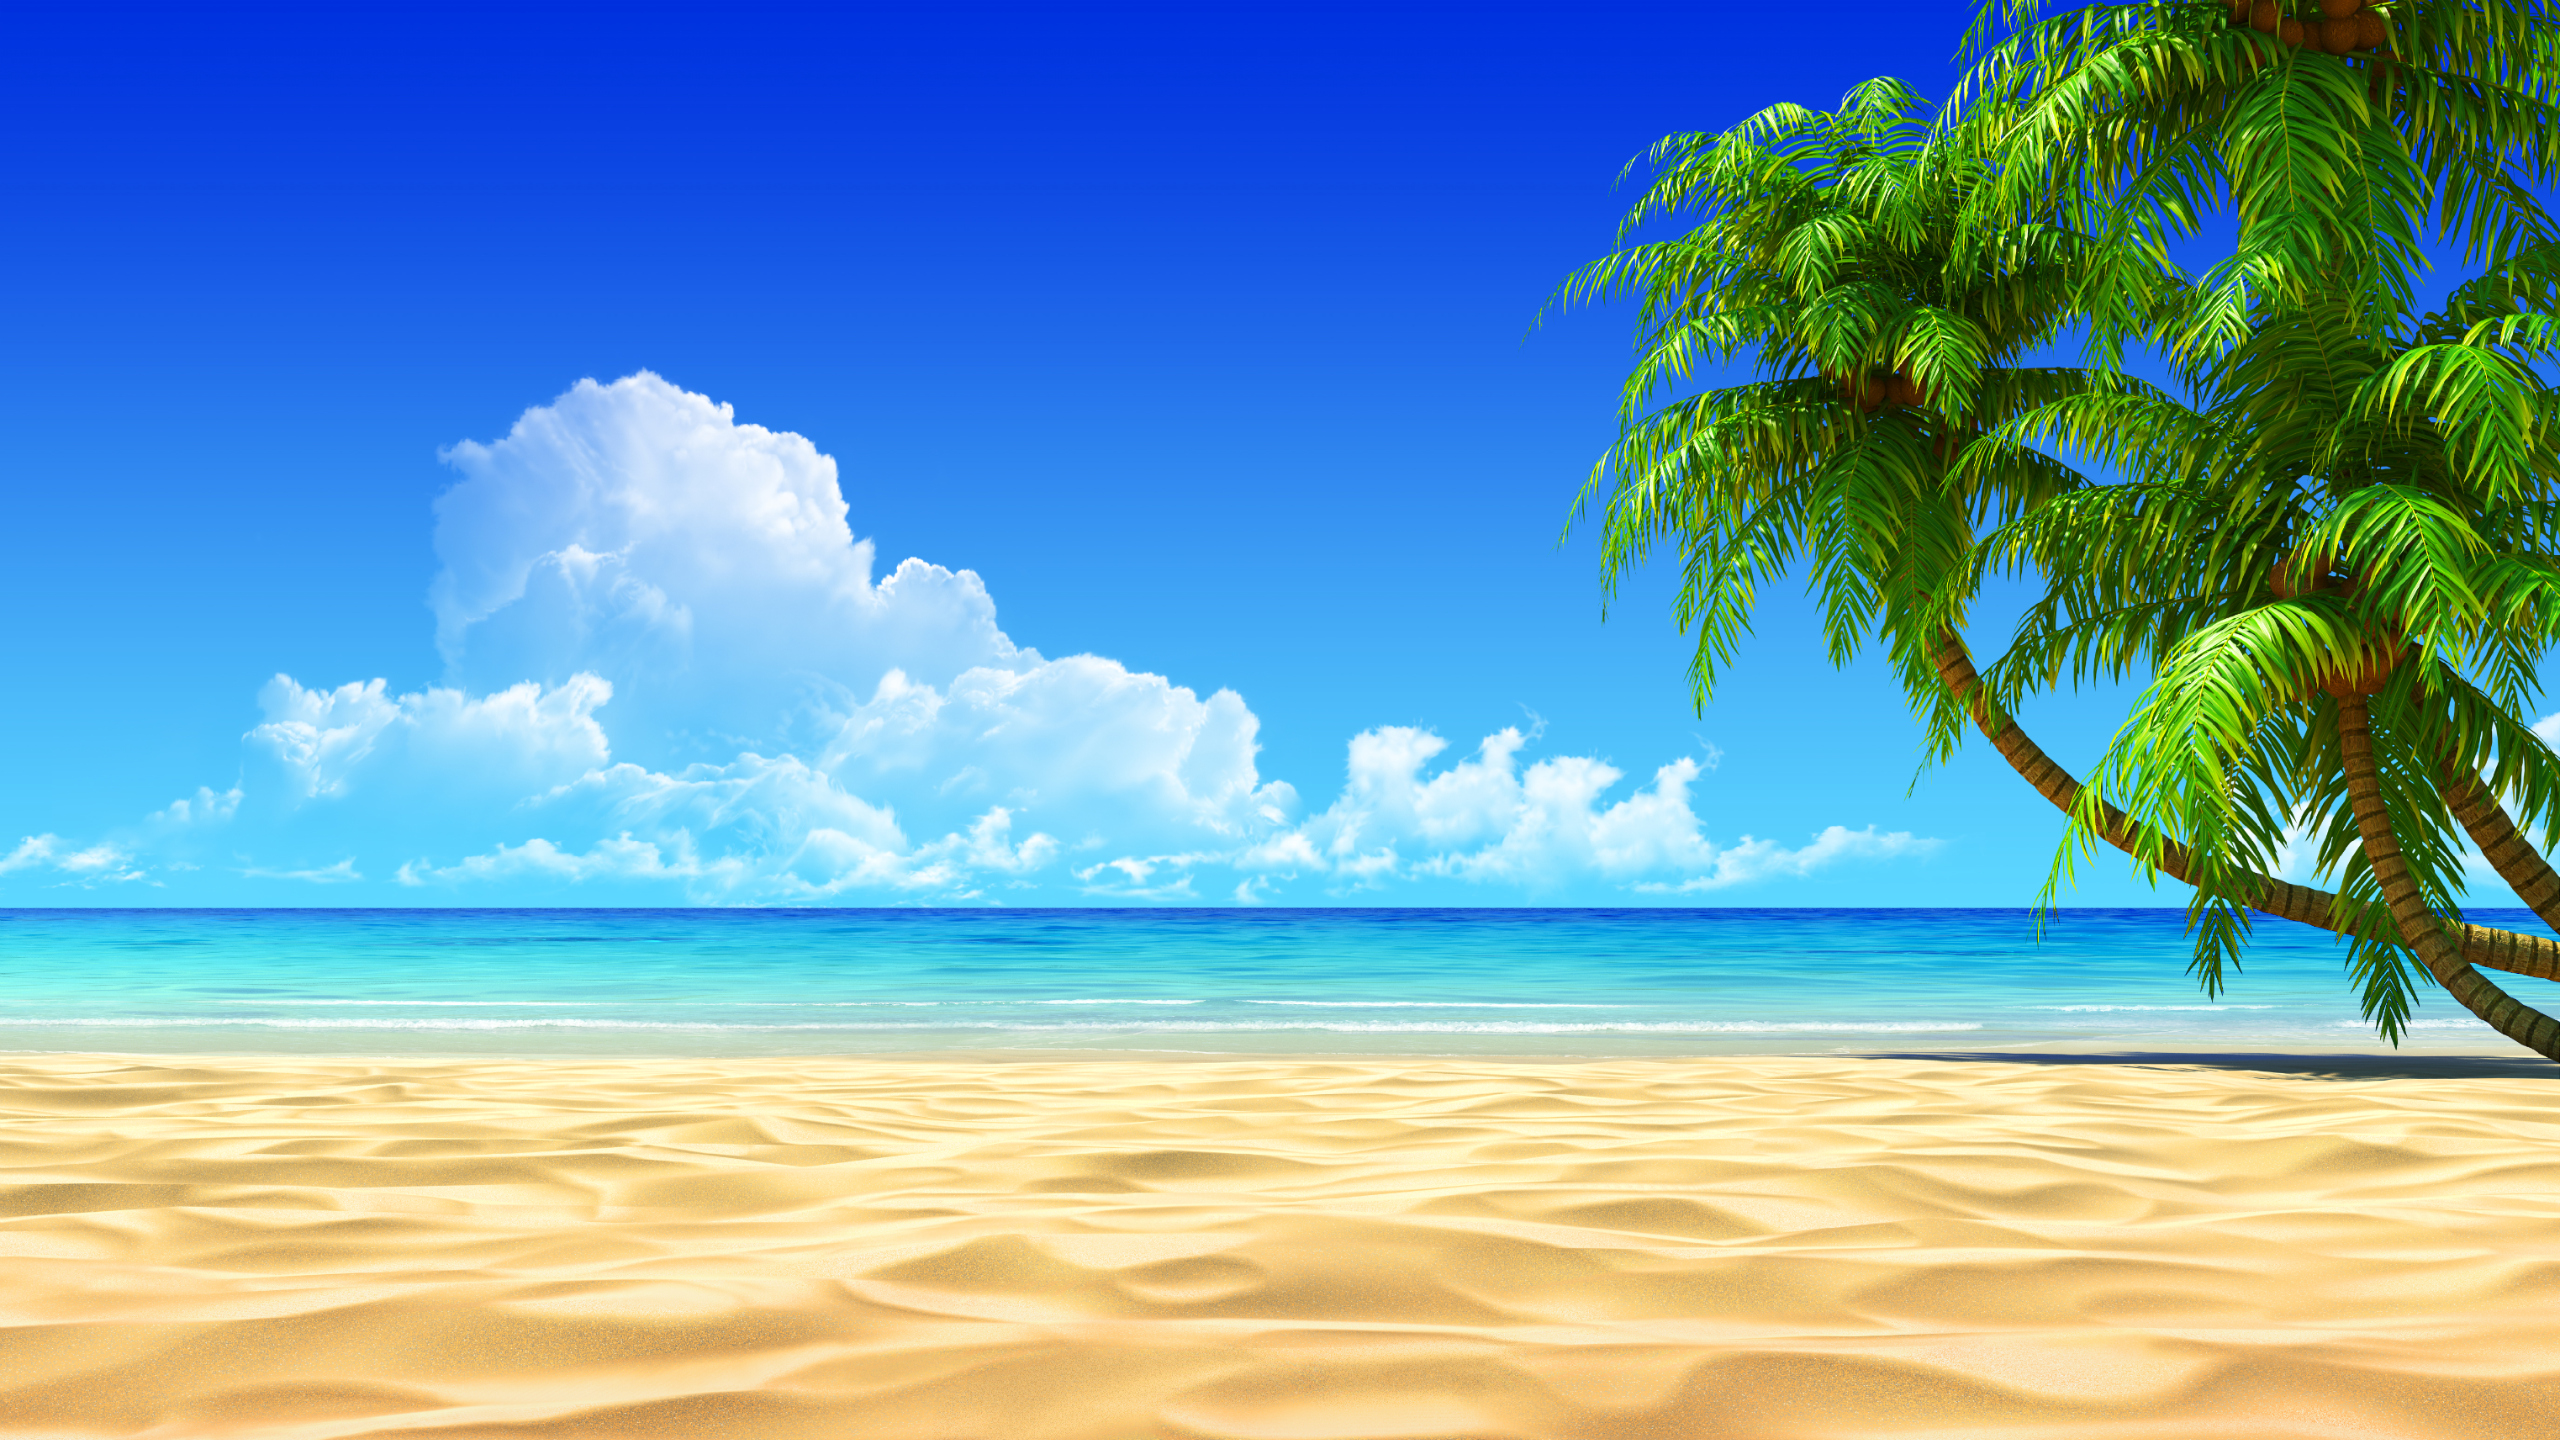 related beach pictures 2560x1440